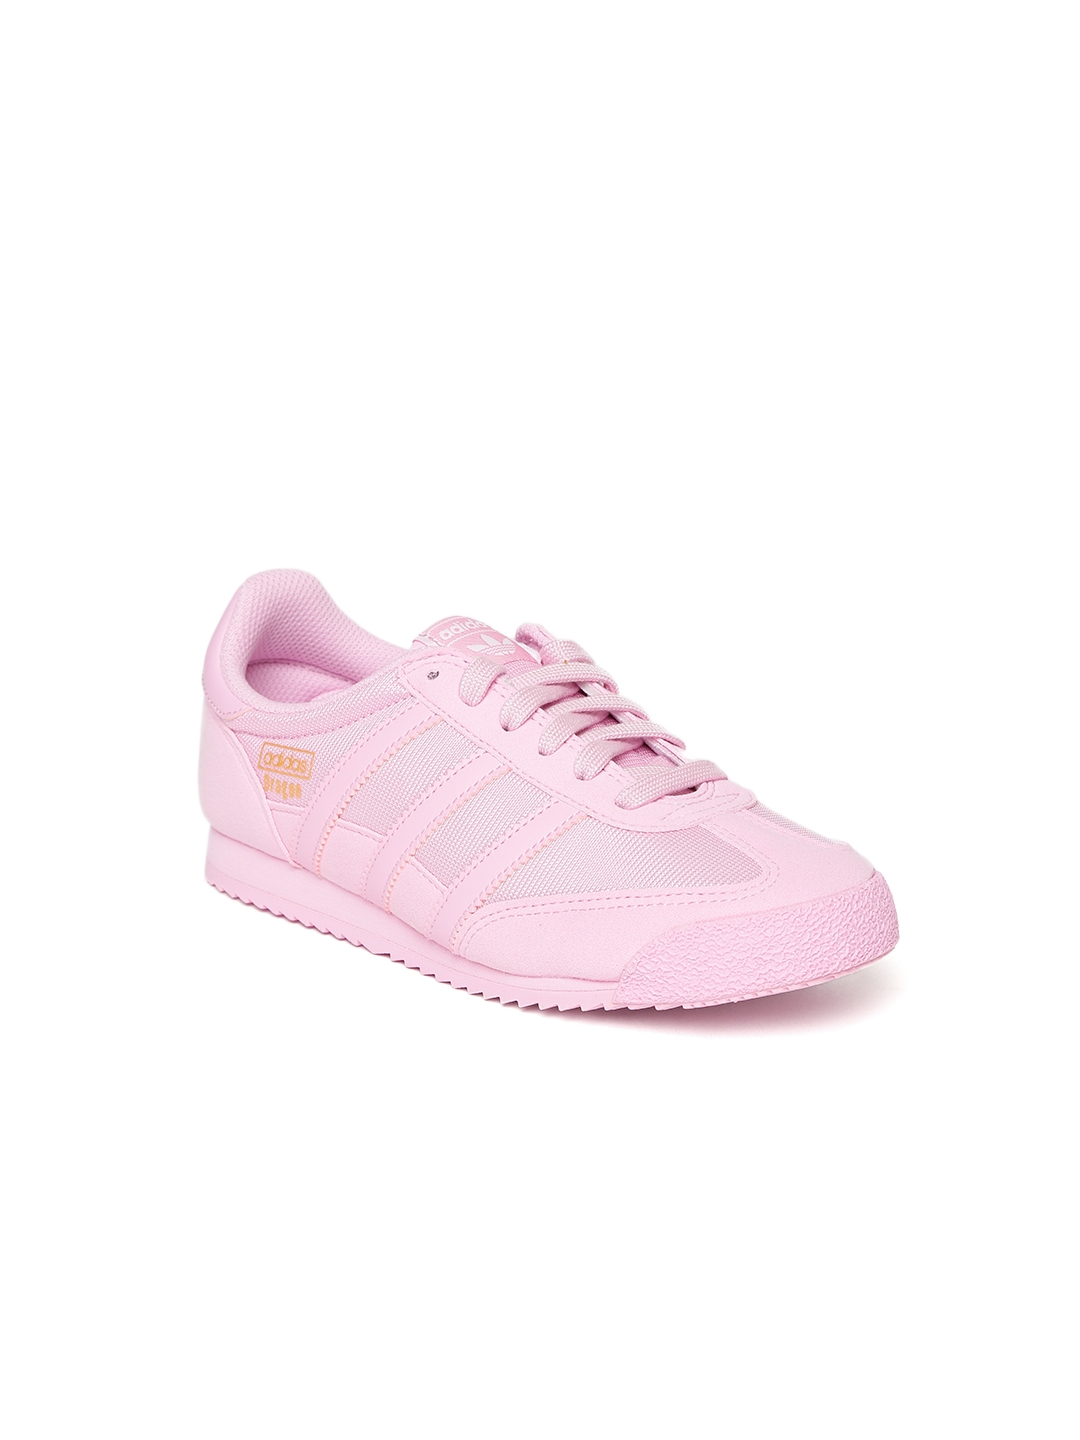 146a15aeed Buy ADIDAS Originals Unisex Pink Dragon OG Junior Sneakers - Casual ...